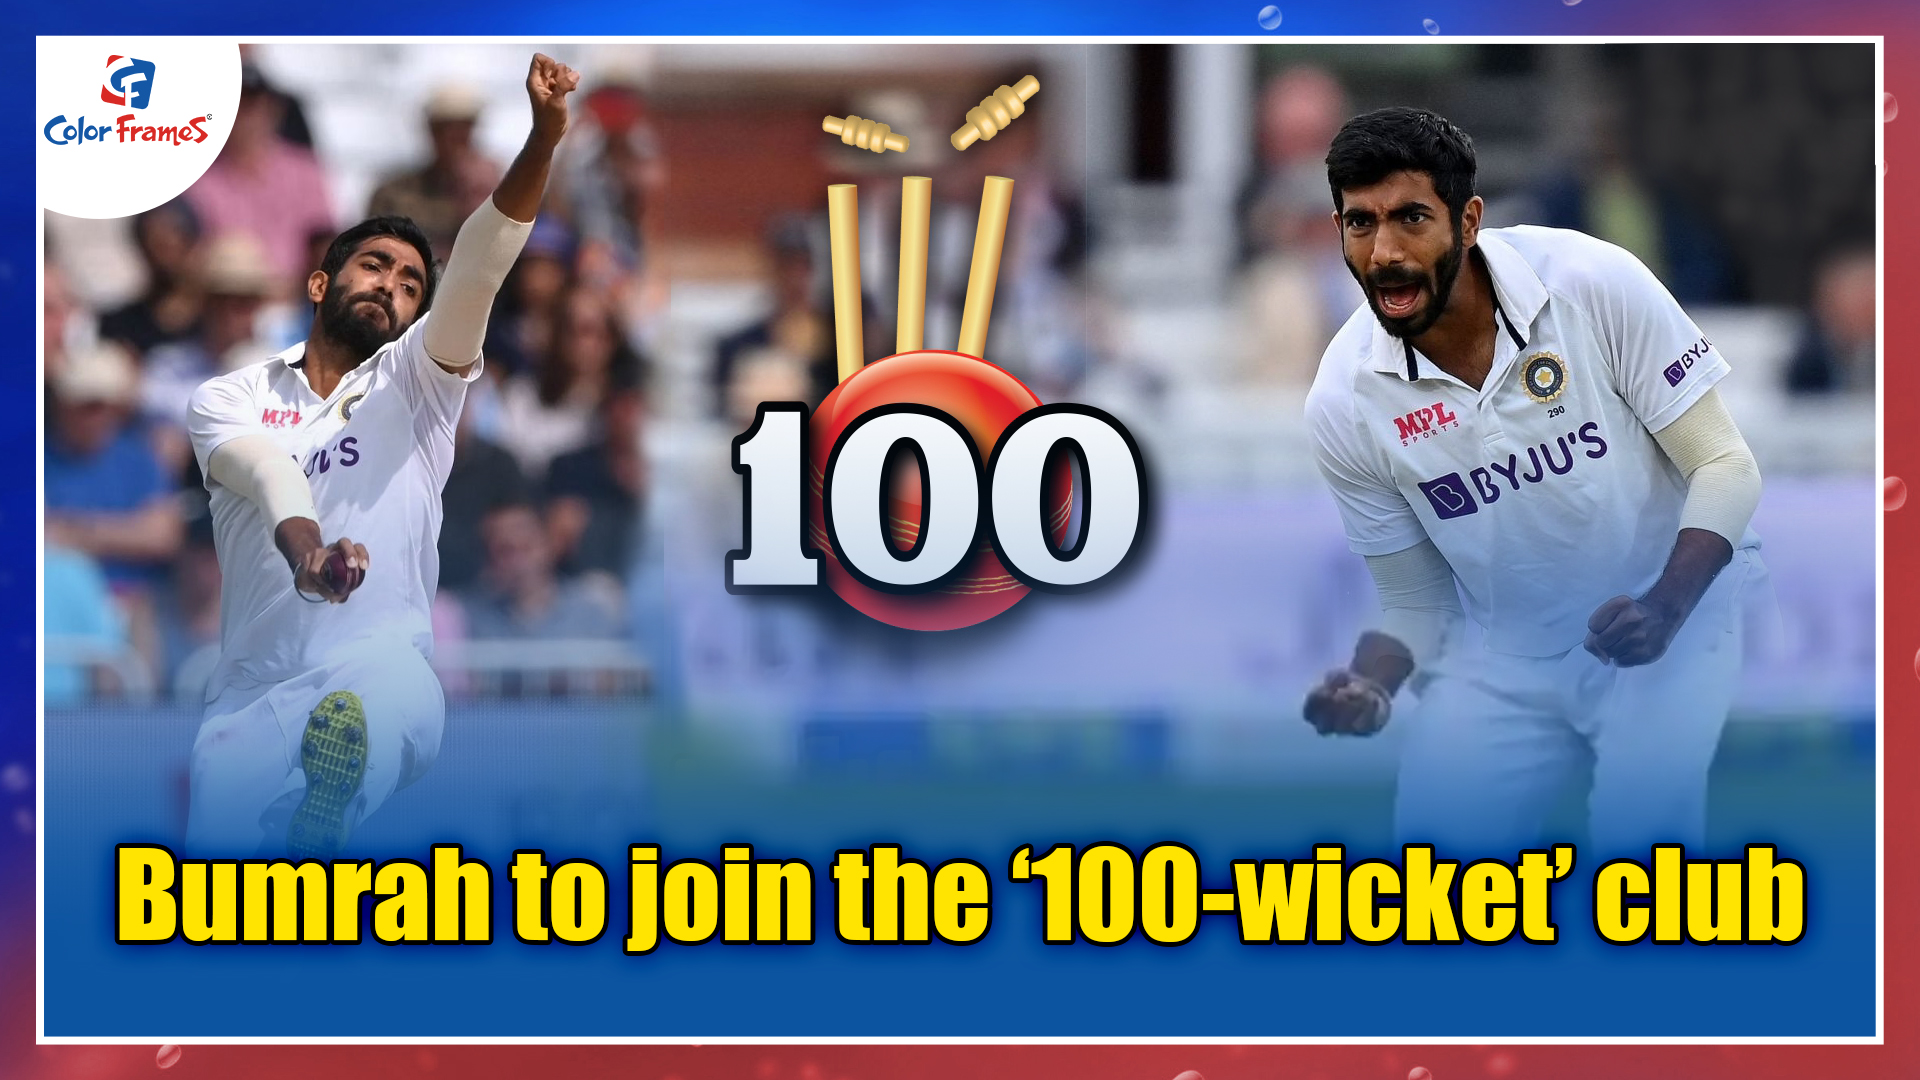 Bumrah to join the '100-wicket' club